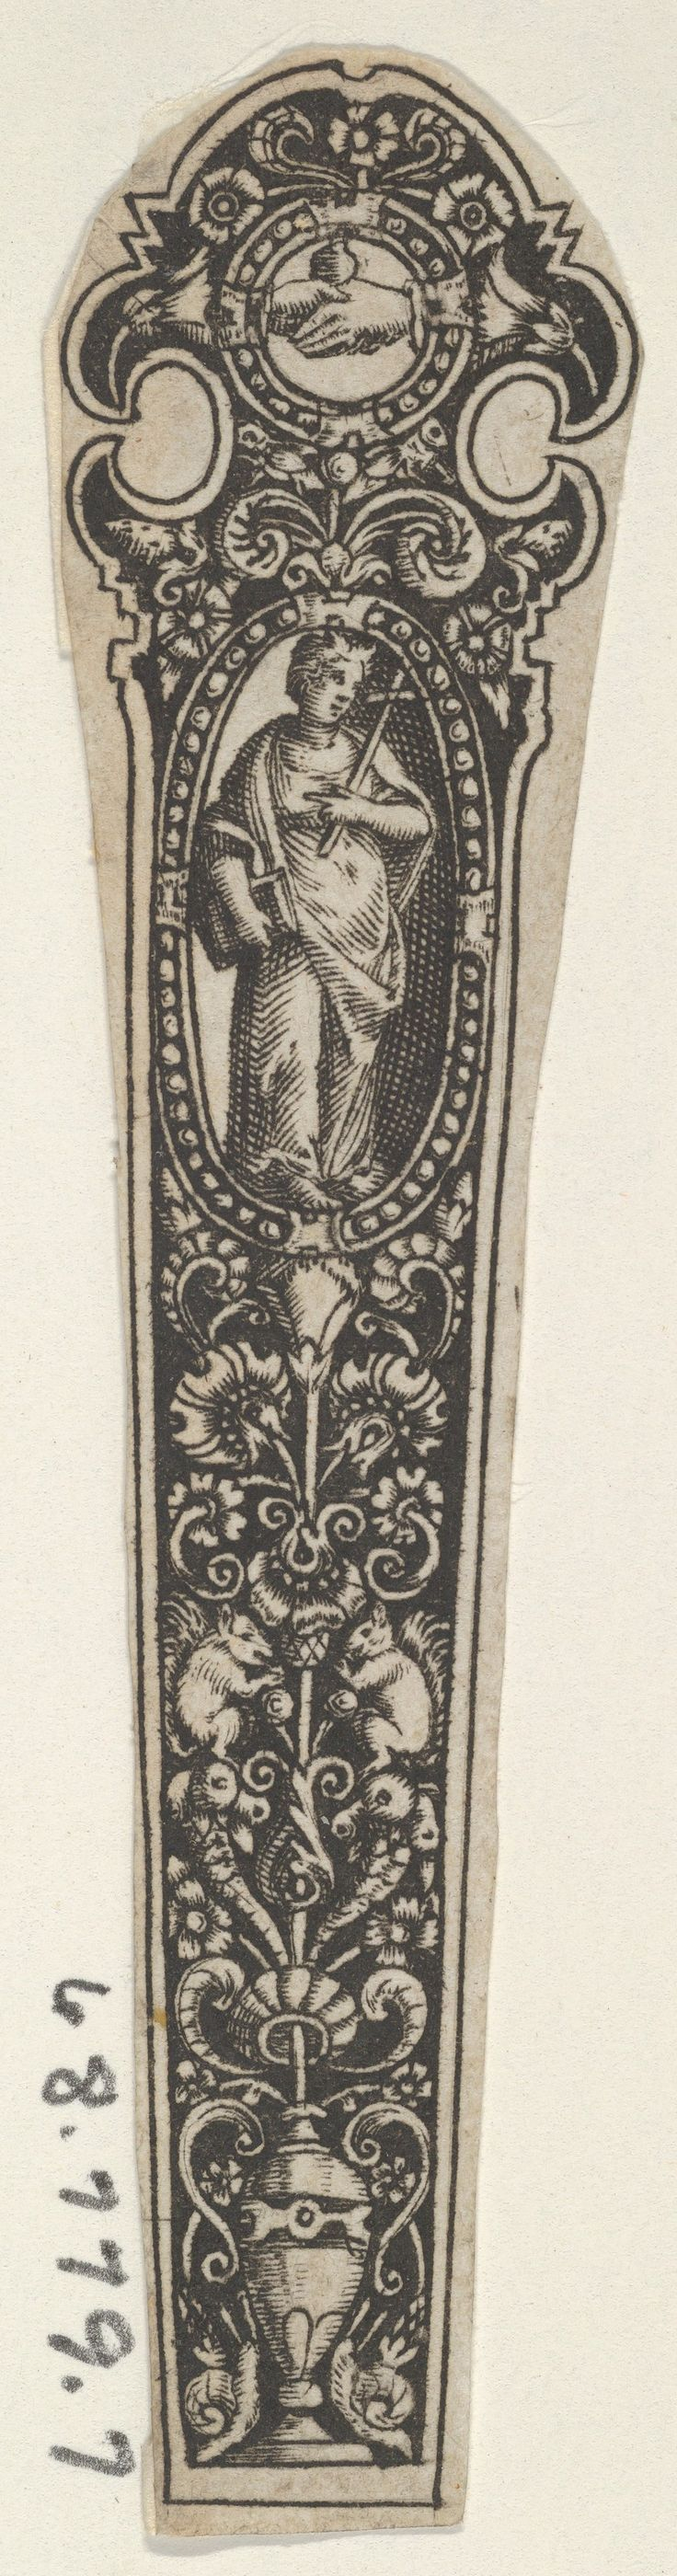 Copy of a Design for a Knife Handle with the Personification of Faith Artist: after Johann Theodor de Bry (Netherlandish, Strasbourg 1561–1623 Bad Schwalbach) Date: 1580–1600